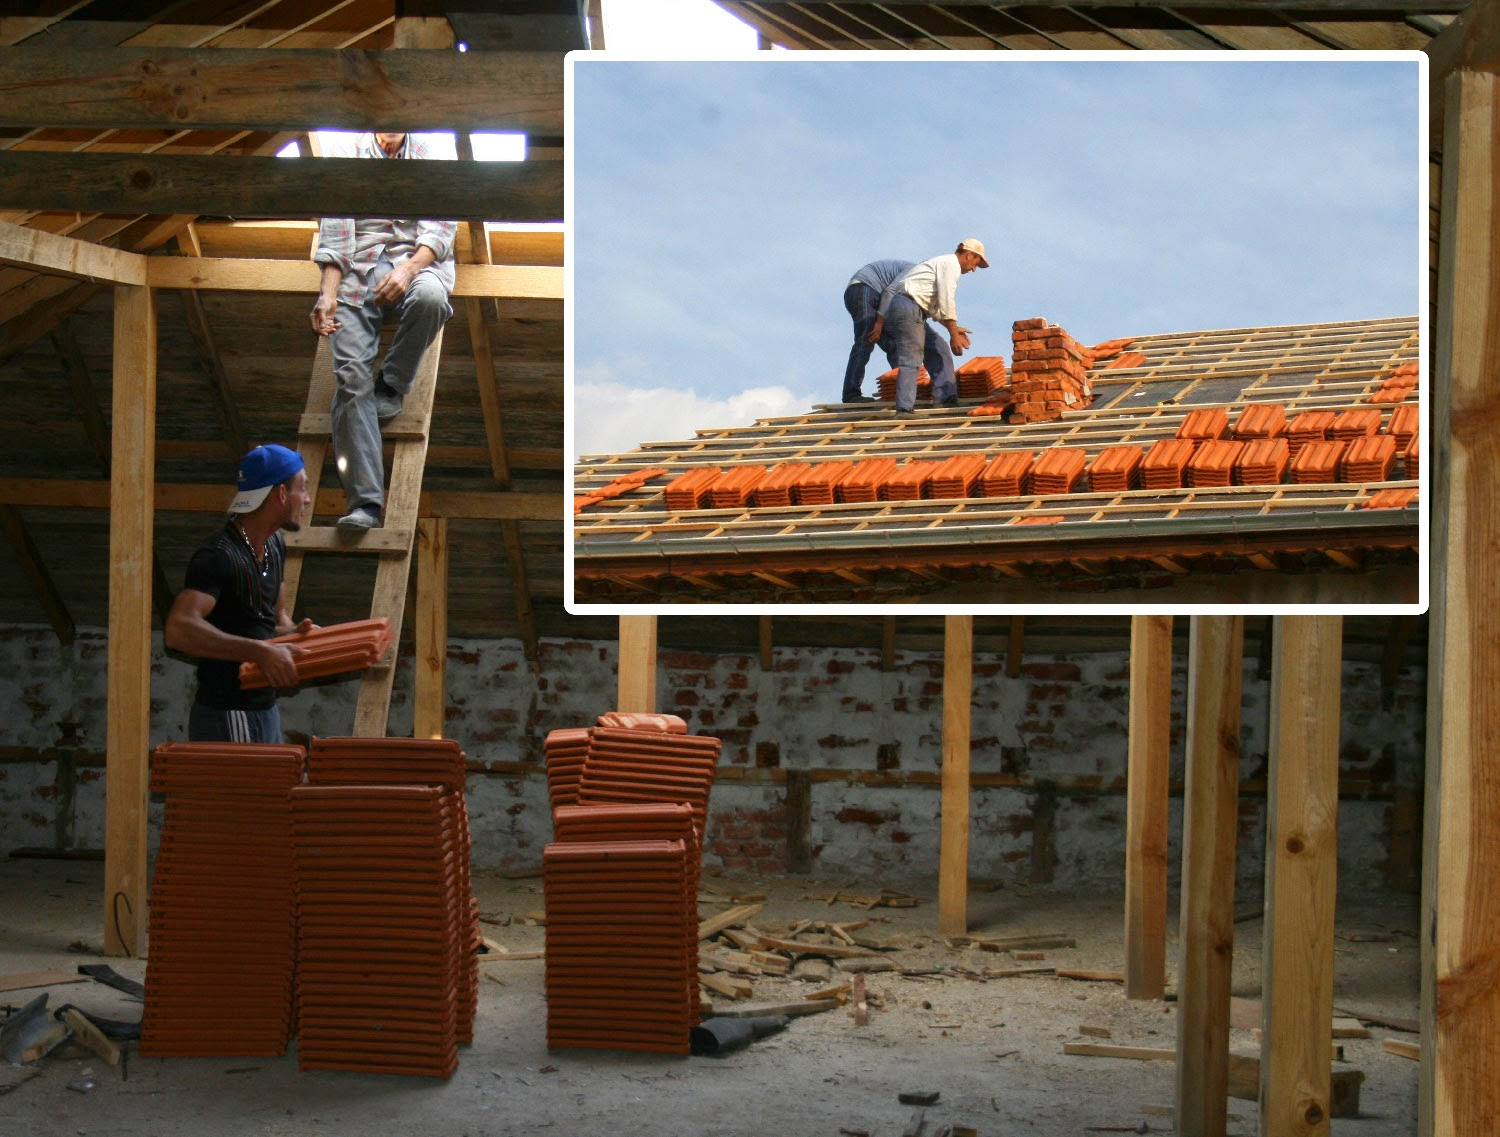 The tiles go onto the roof